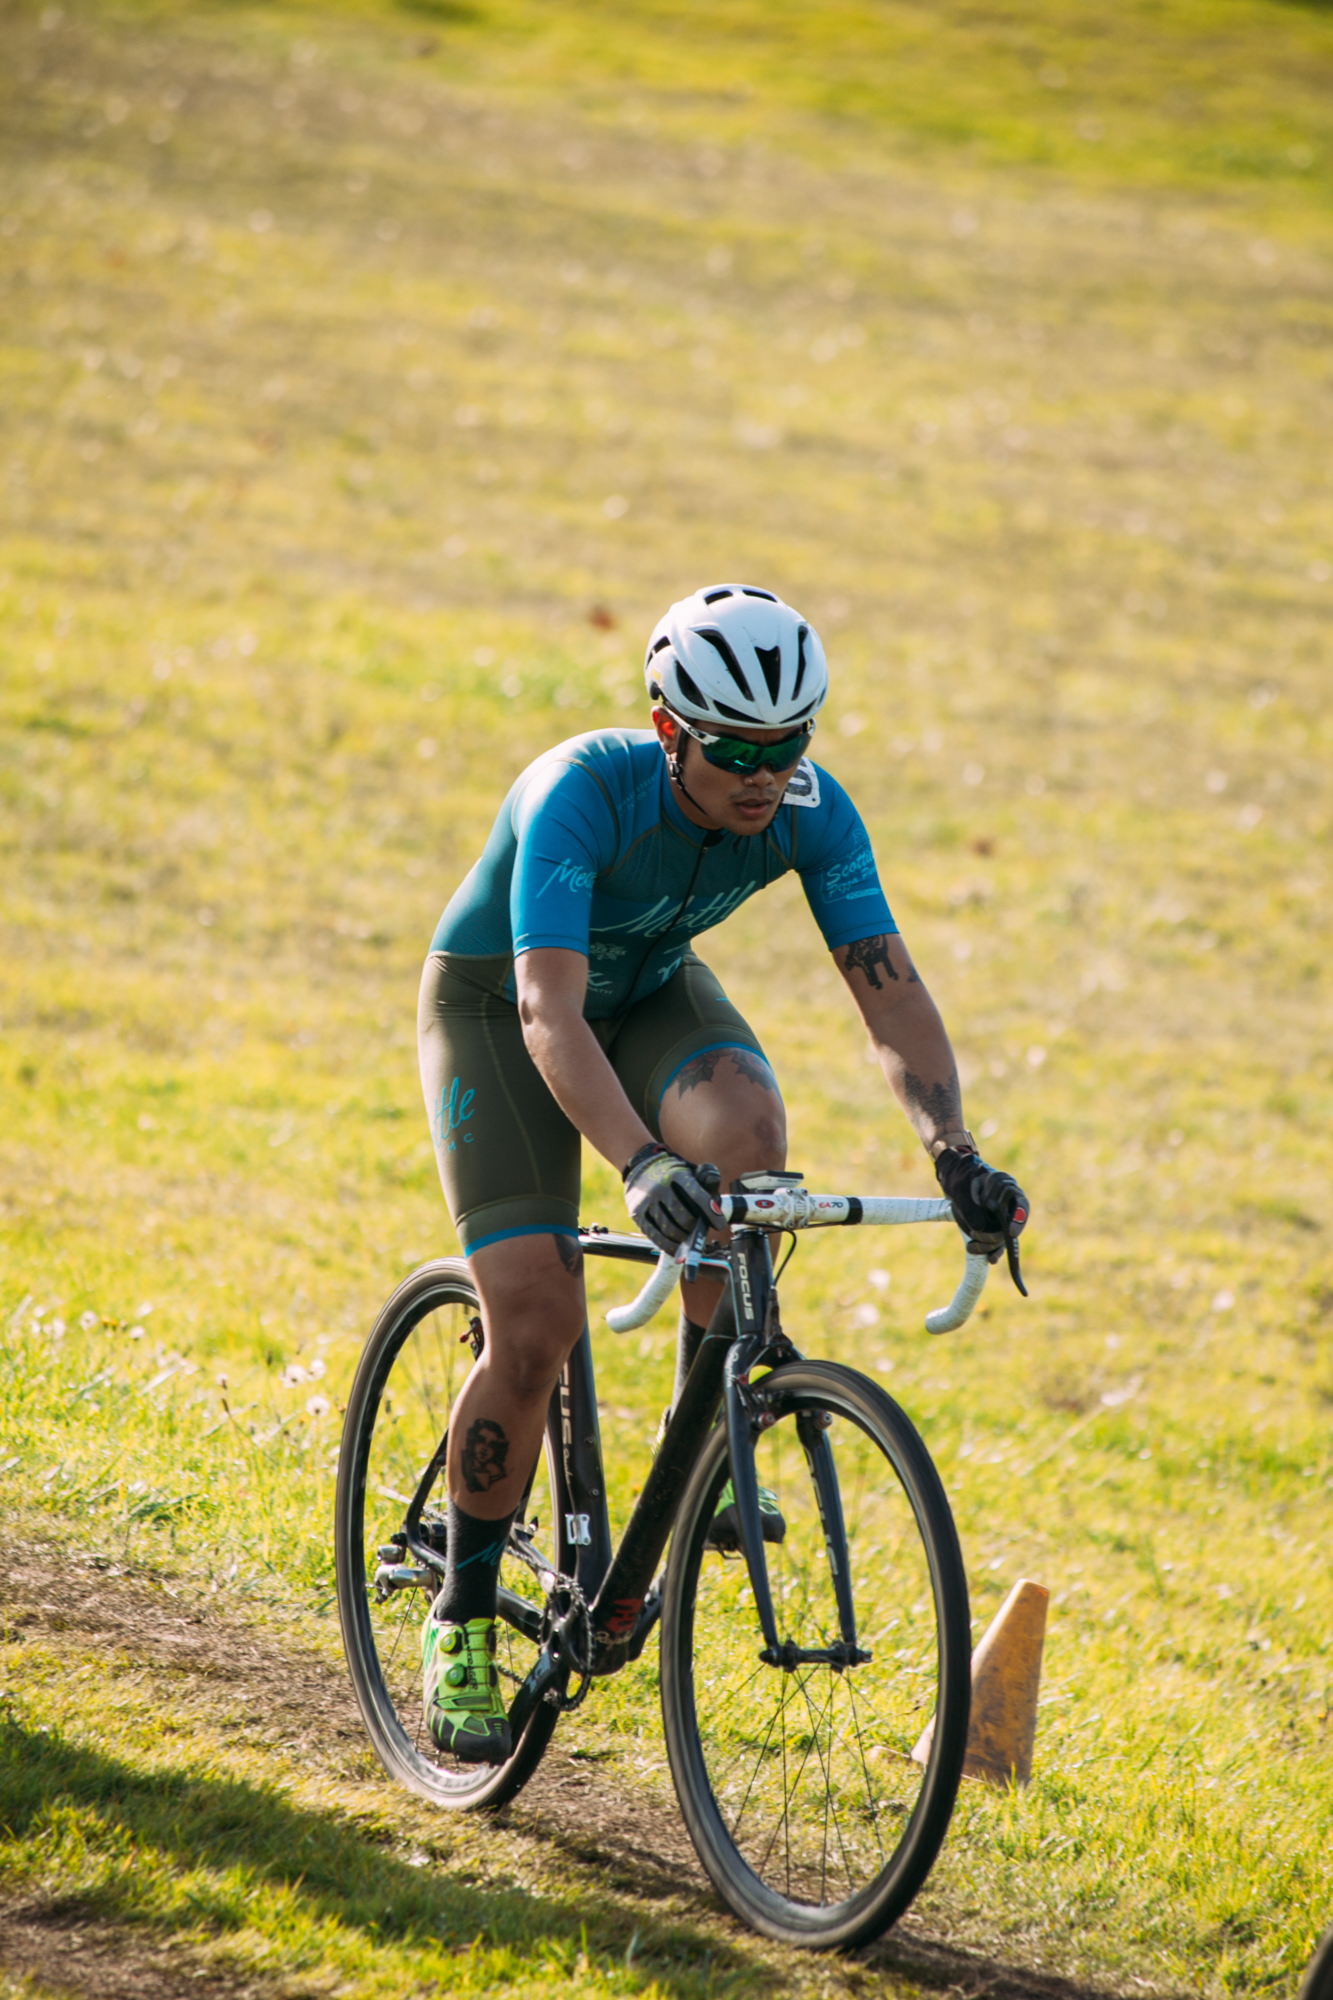 Cyclocross18_CCCX_RainierHS-49-mettlecycling.jpg